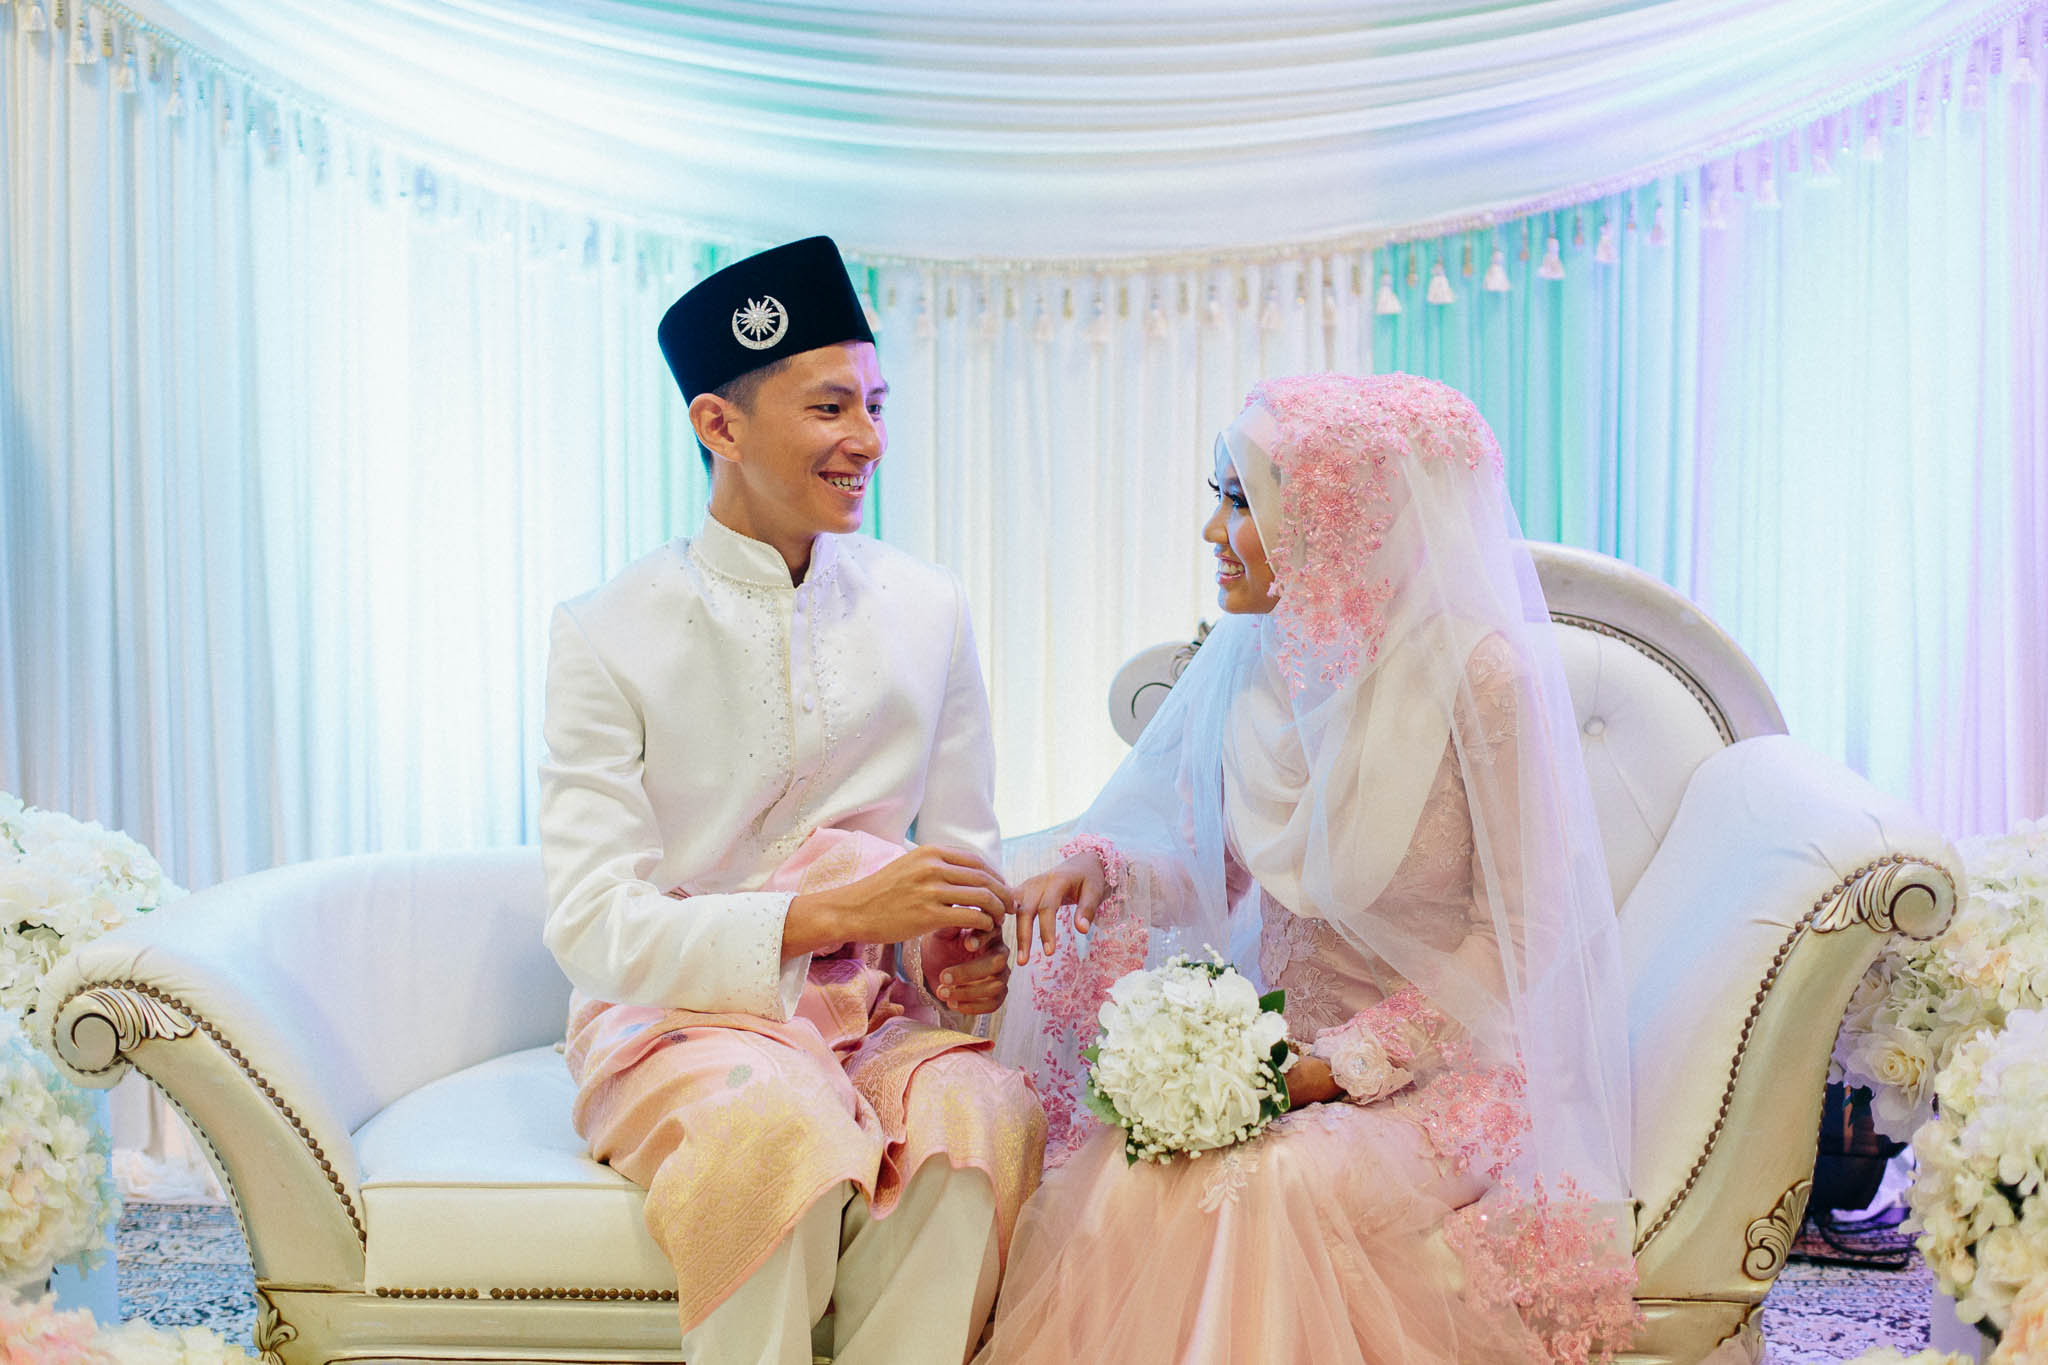 singapore-wedding-photographer-wedding-halimah-muhsin-019.jpg